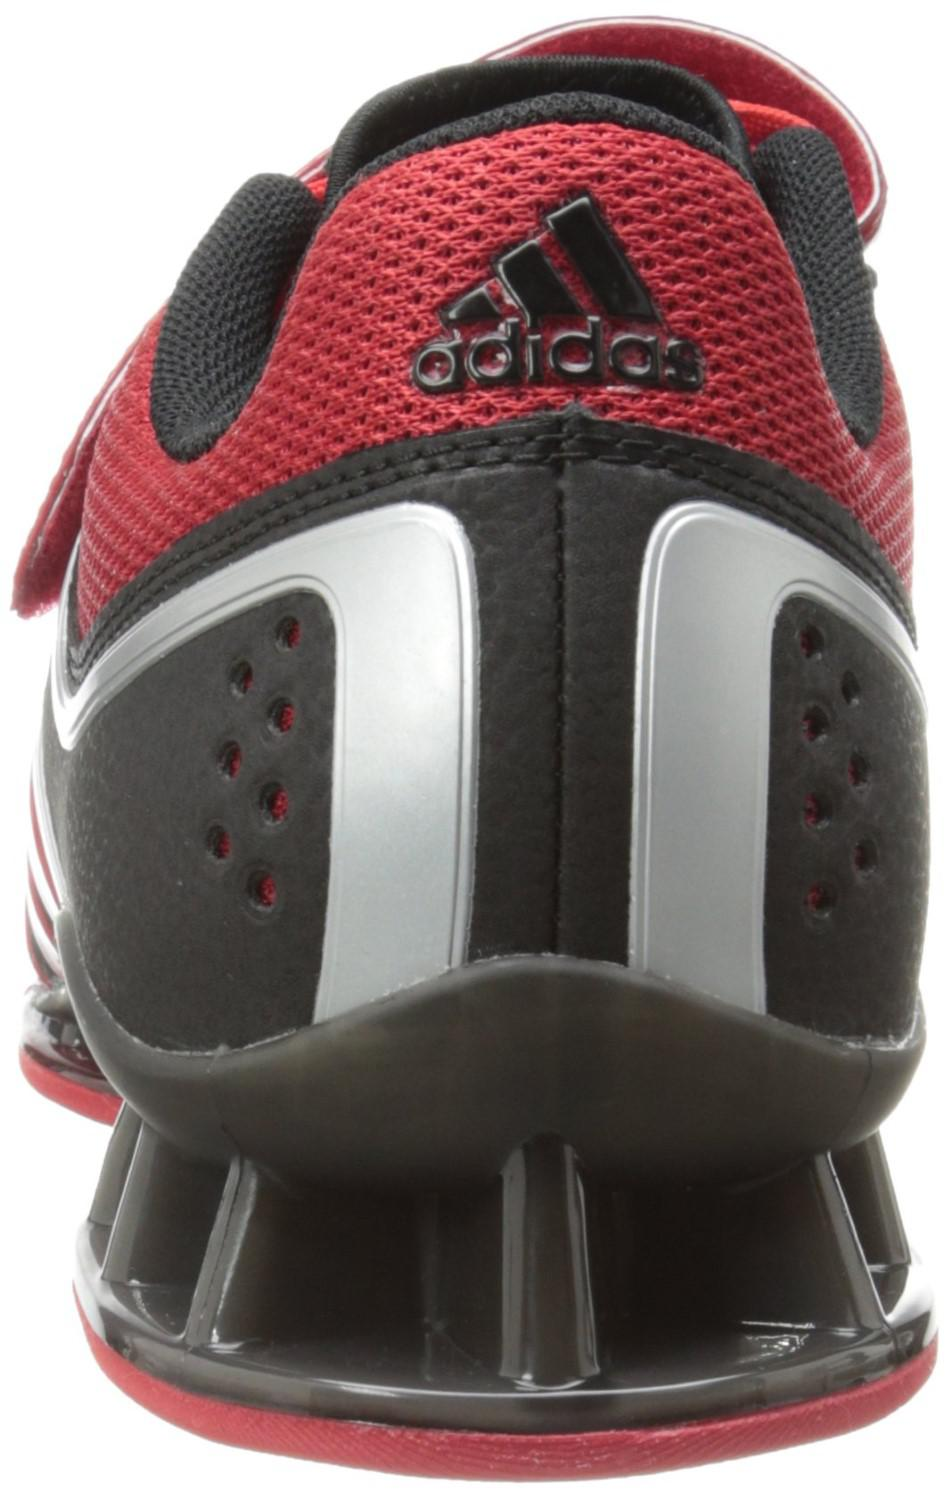 Lyst - adidas Performance Adipower Weightlifting Trainer Shoe for Men ec37d951a